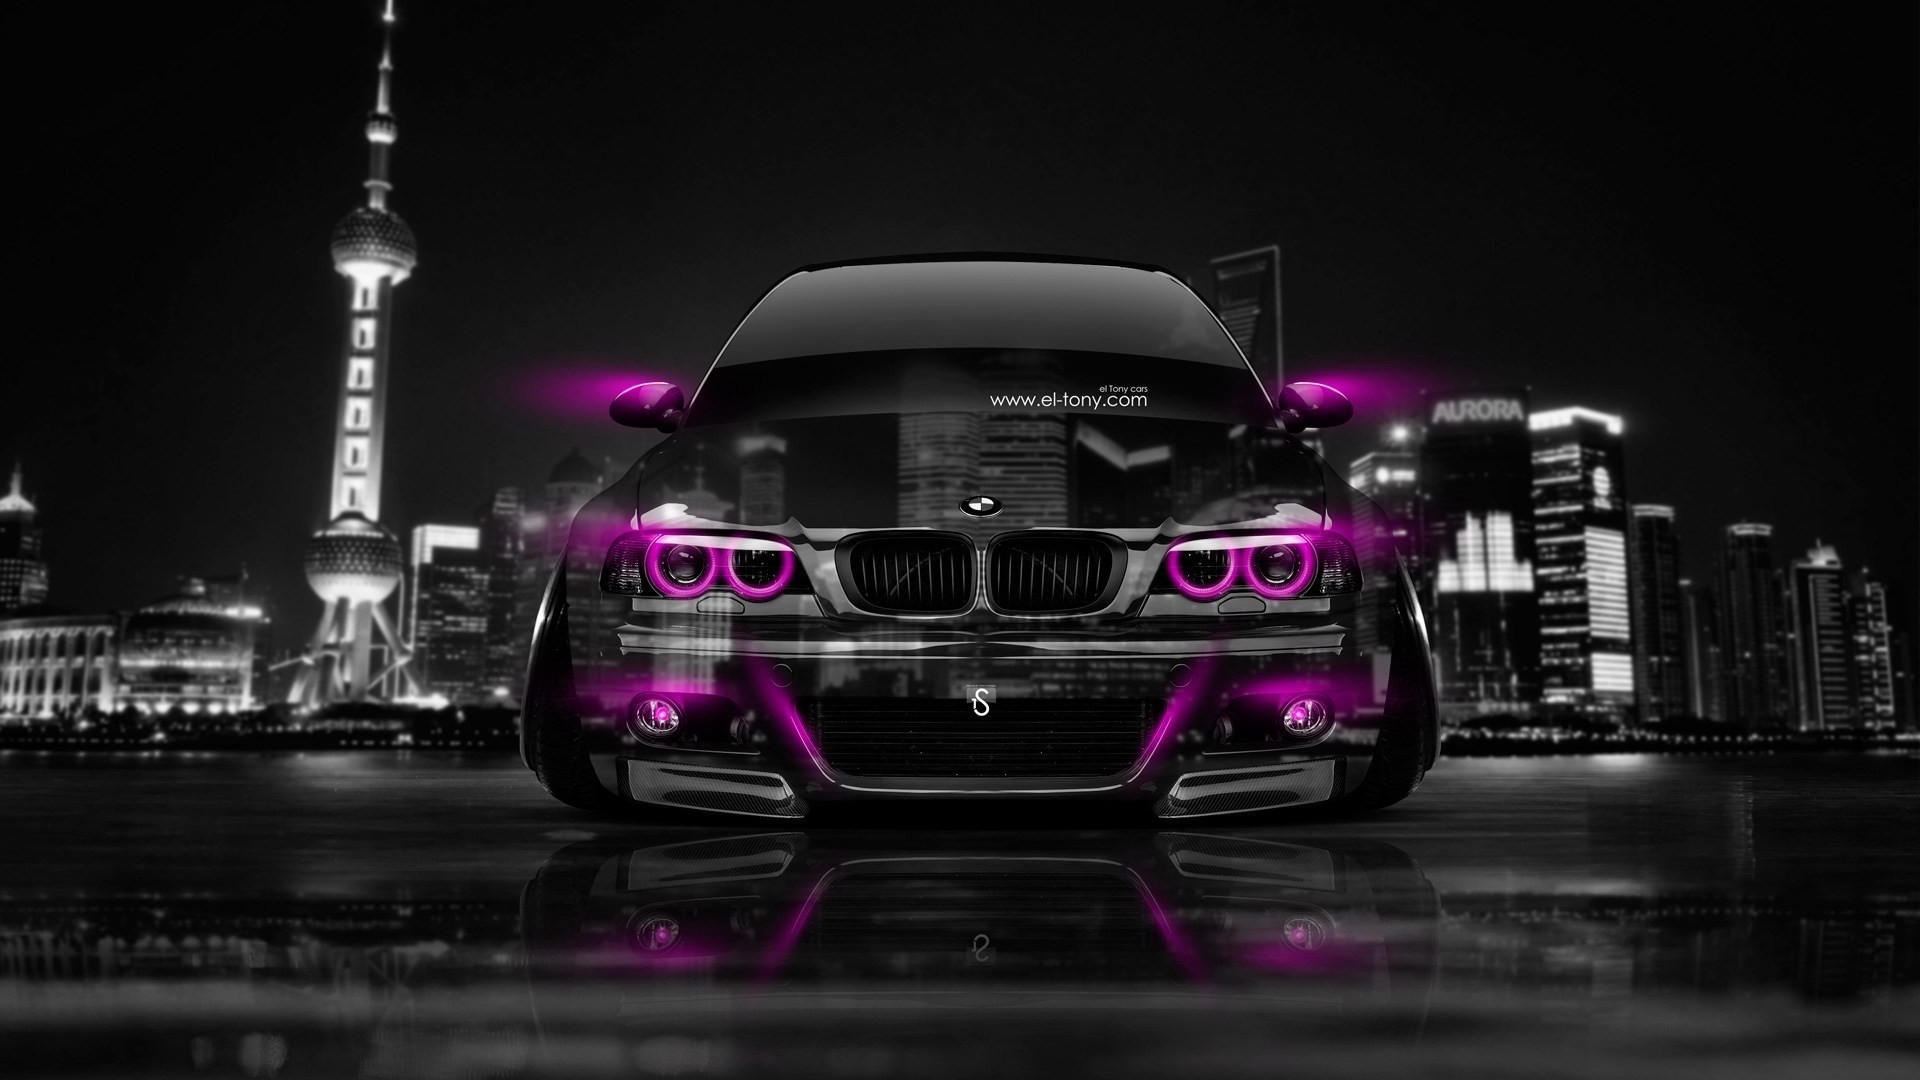 1920x1080 Bmw M3 E46 Front Crystal City Car 2014 El Tony Wallpaper